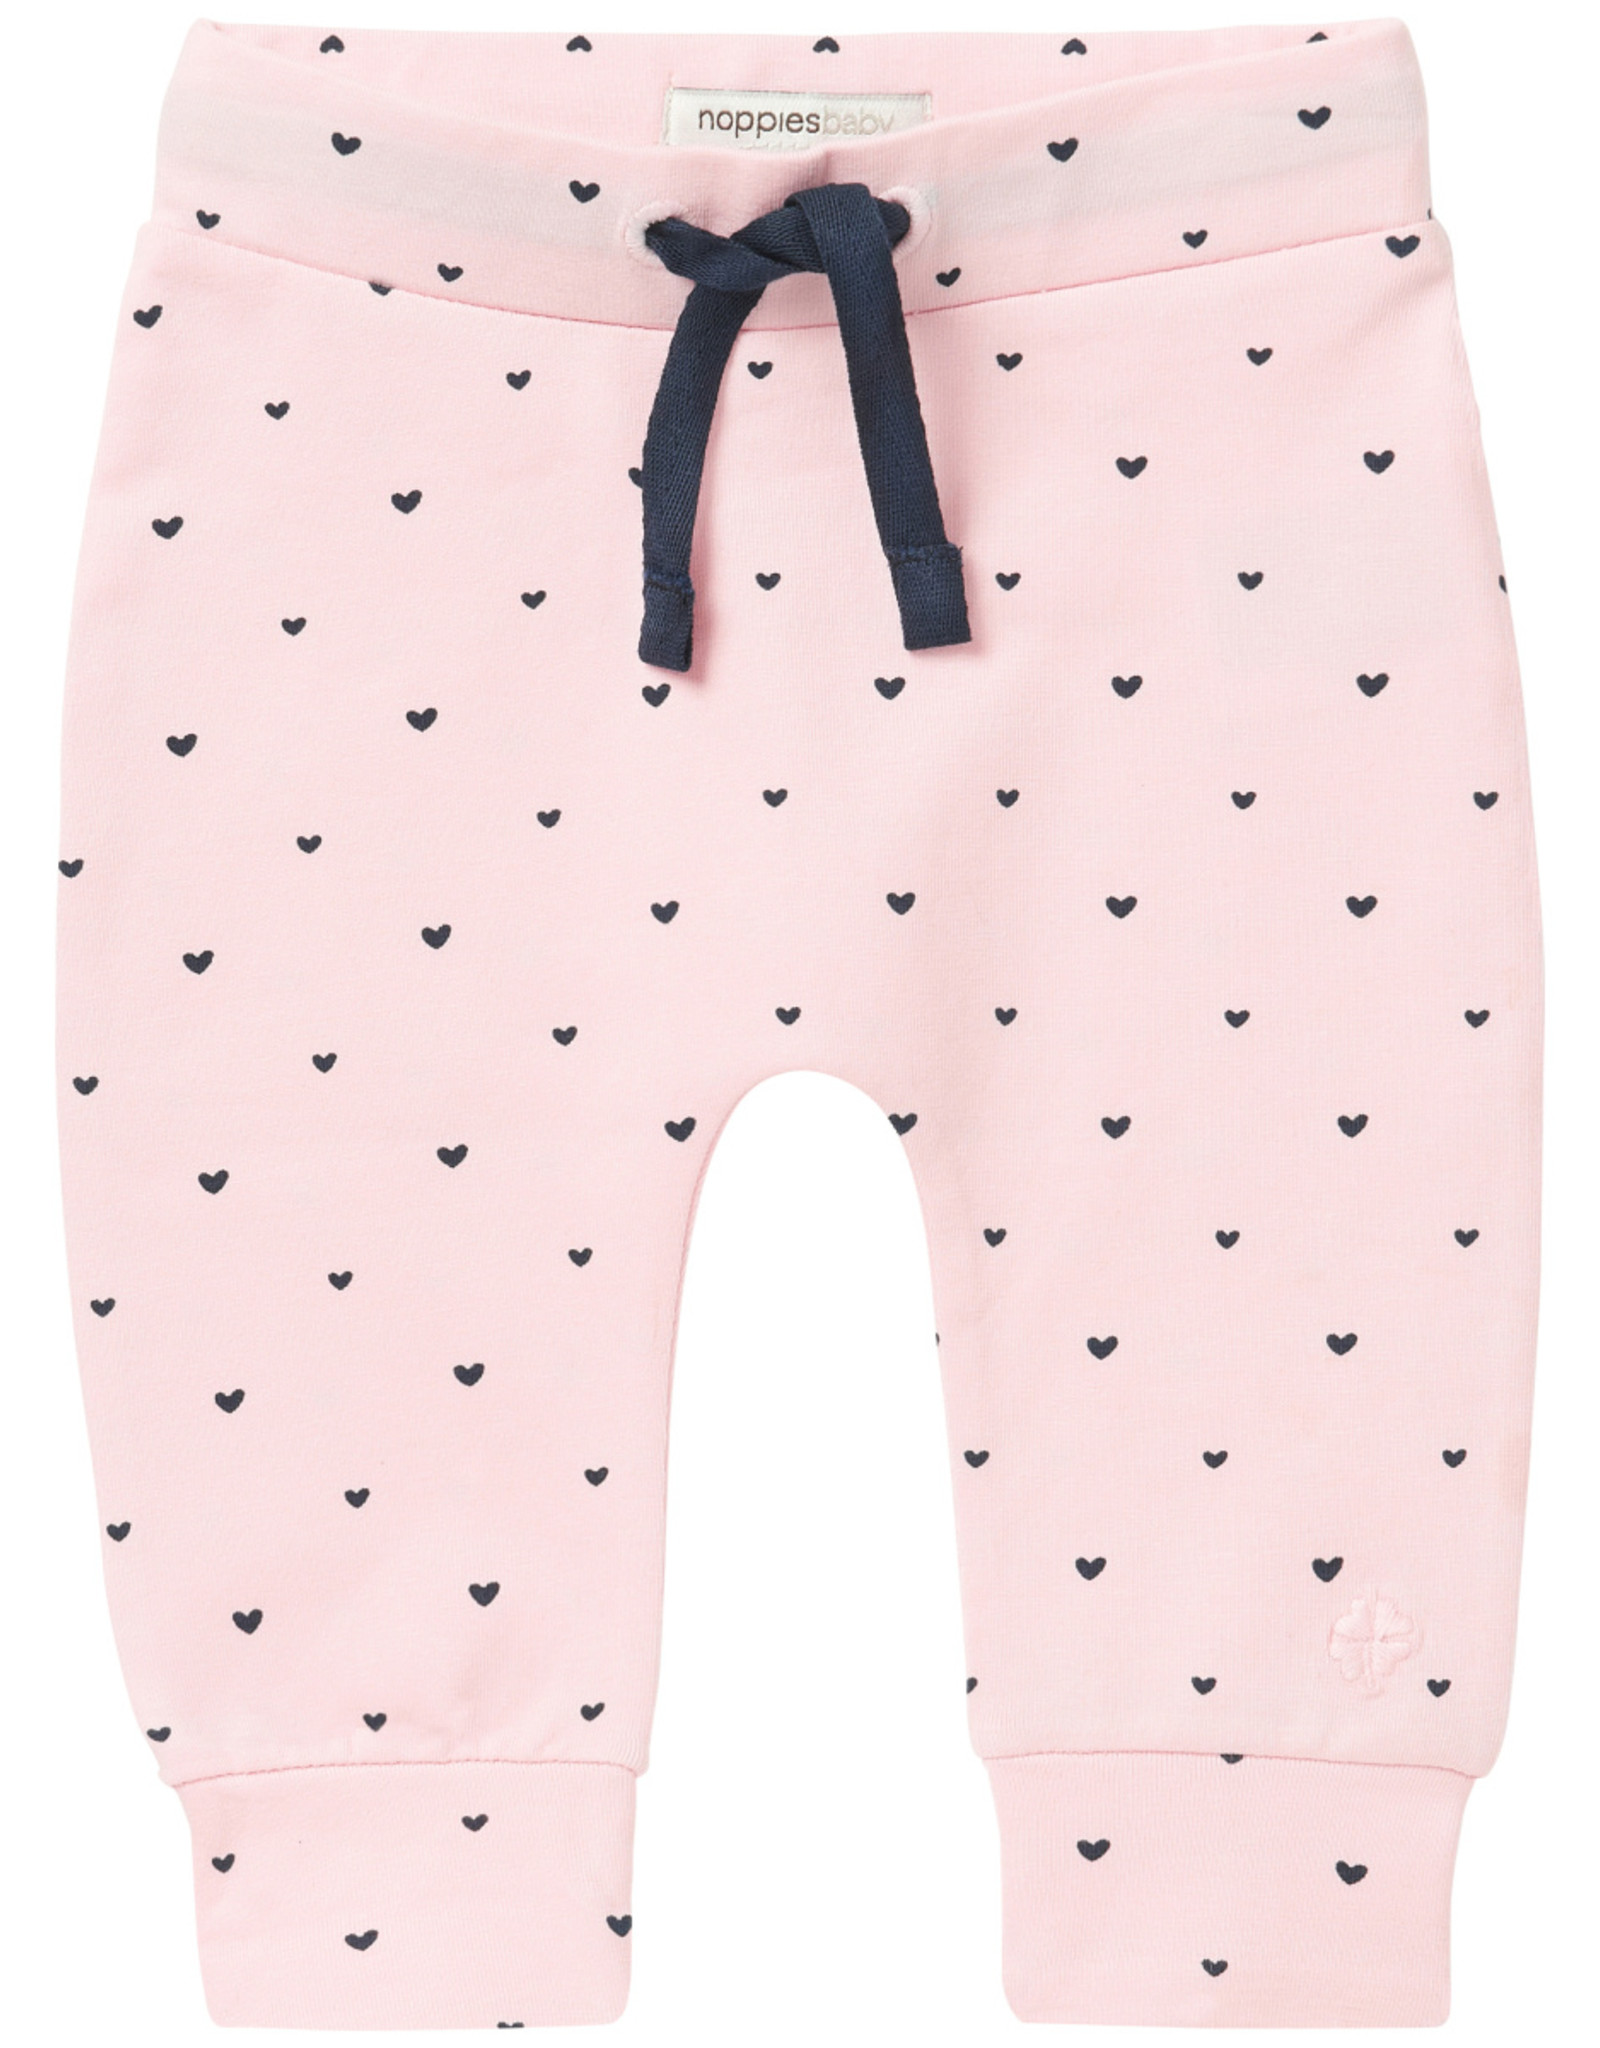 Noppies G Pant jrsy comfort Neenah light rose